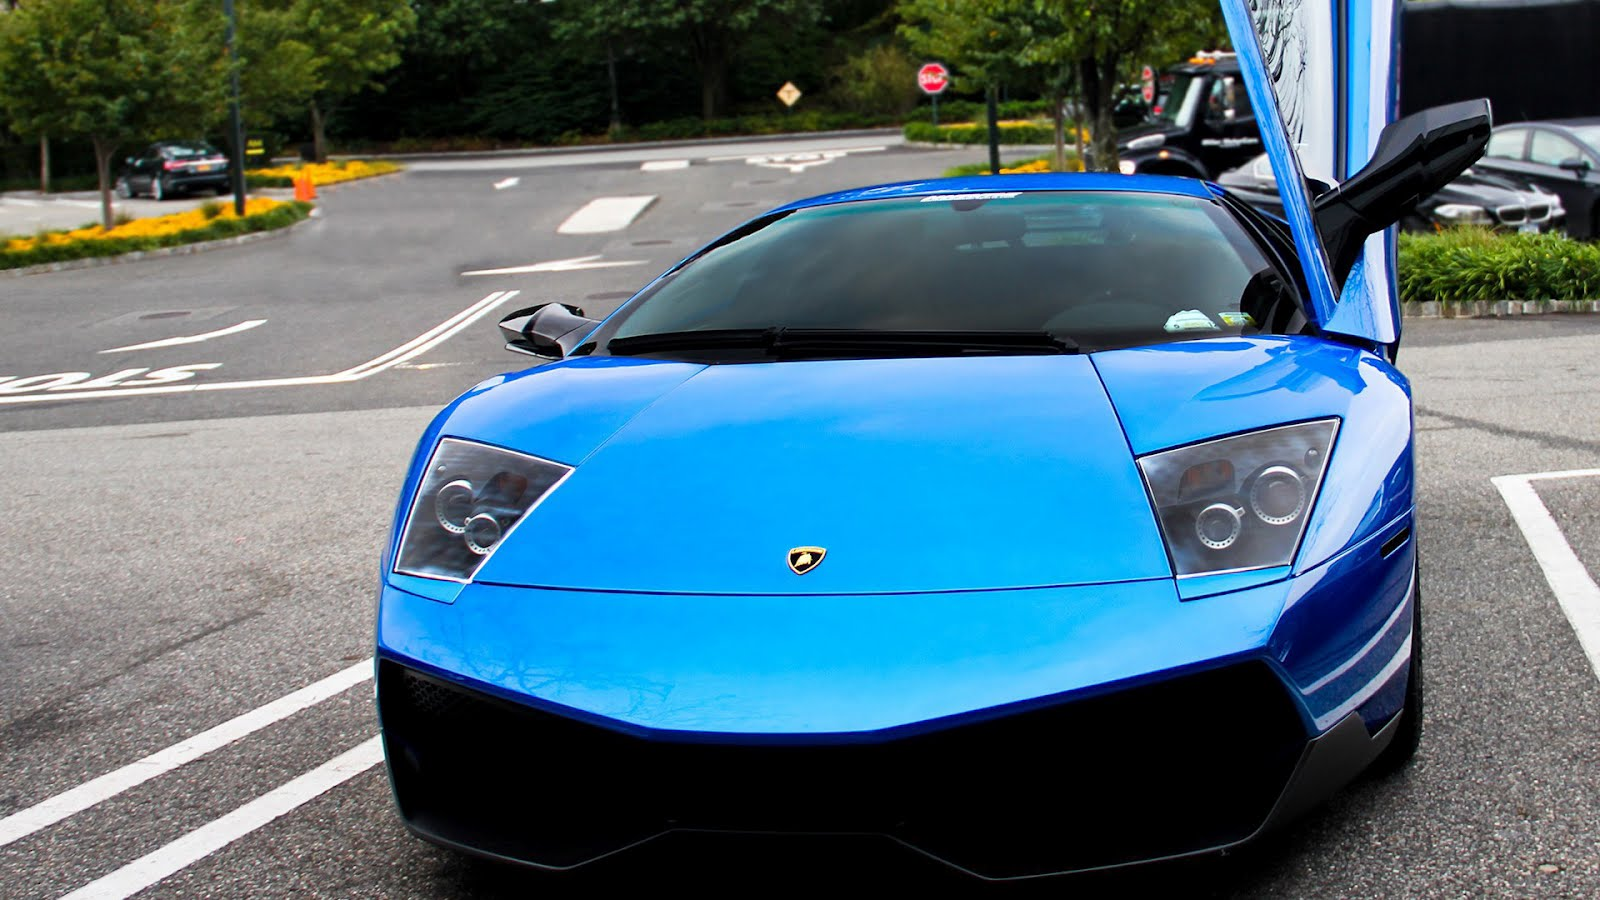 Blue Lamborghini Murcielago Lp640 Hd Car Wallpaper Car Wallpaper Hd